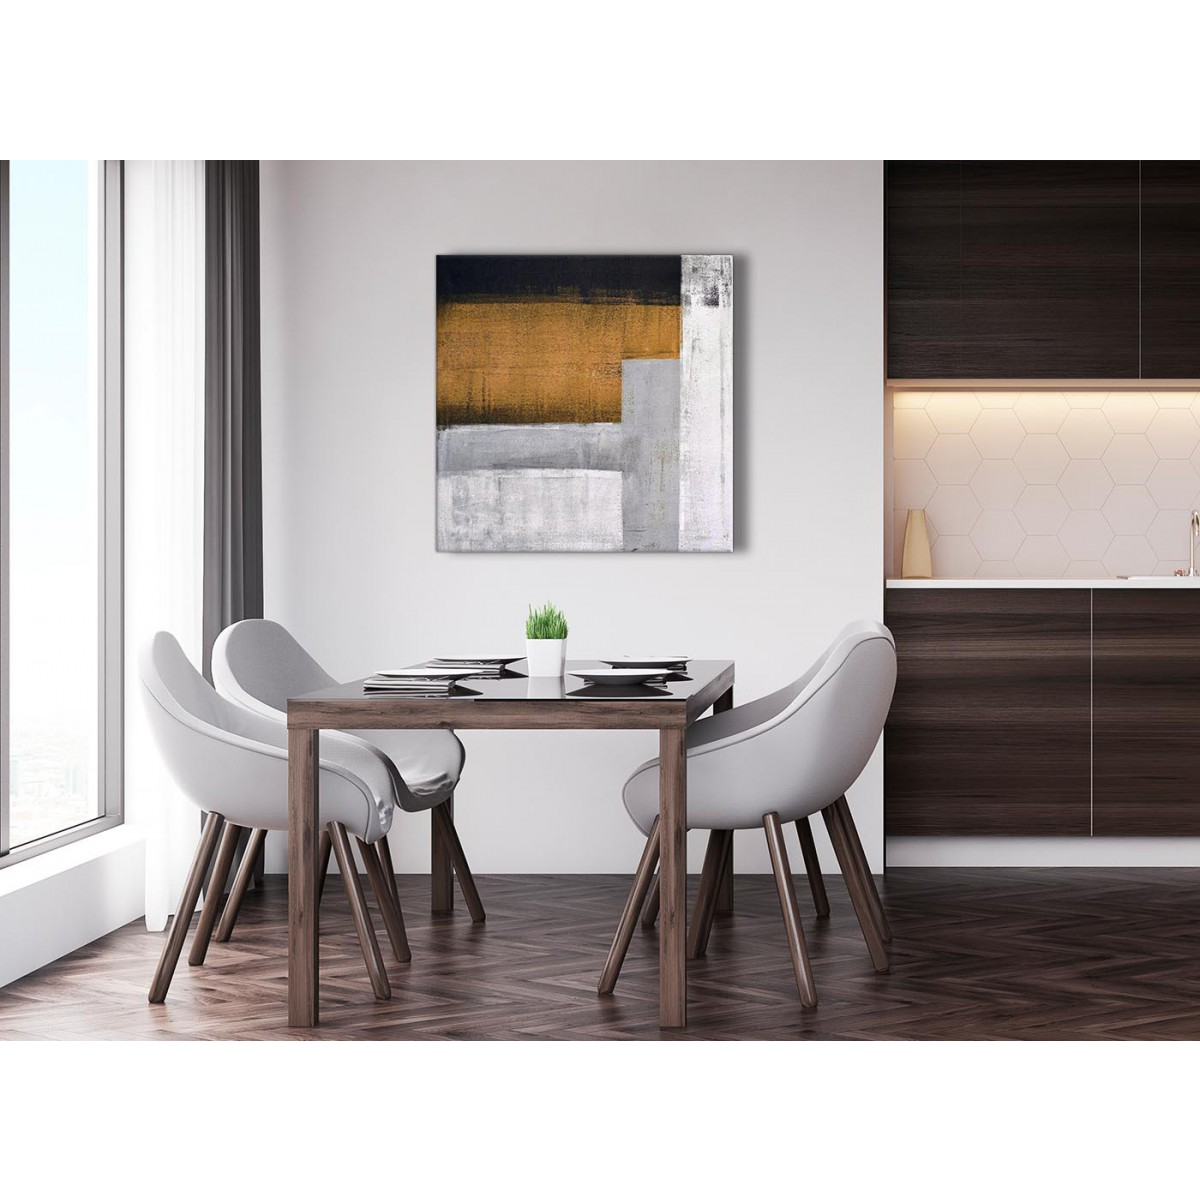 Orange grey painting abstract office canvas pictures decor Orange living room accessories next